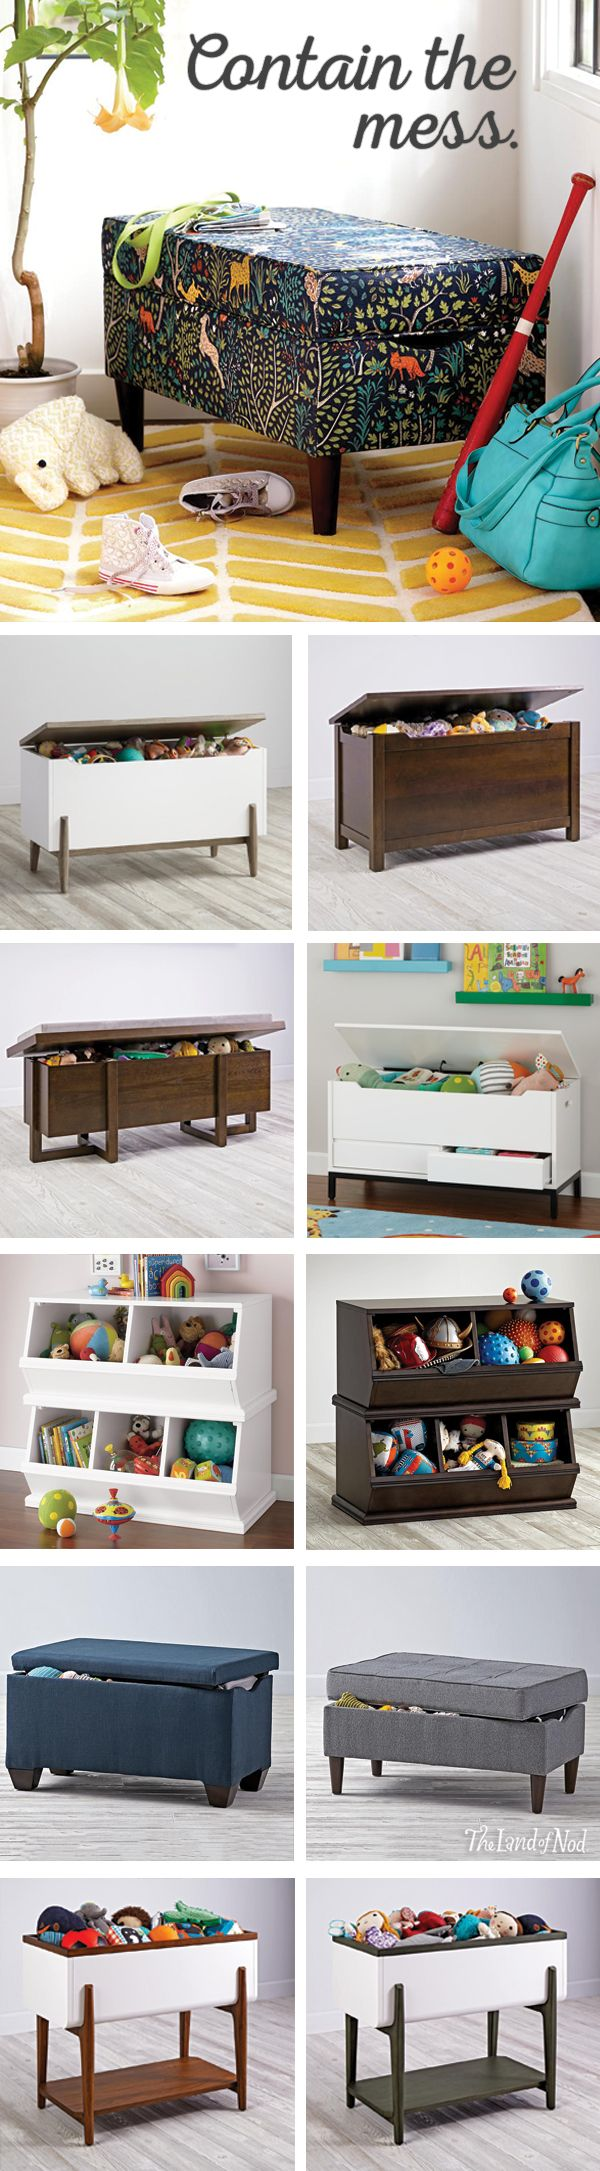 best For Our Home images on Pinterest Good ideas Home ideas